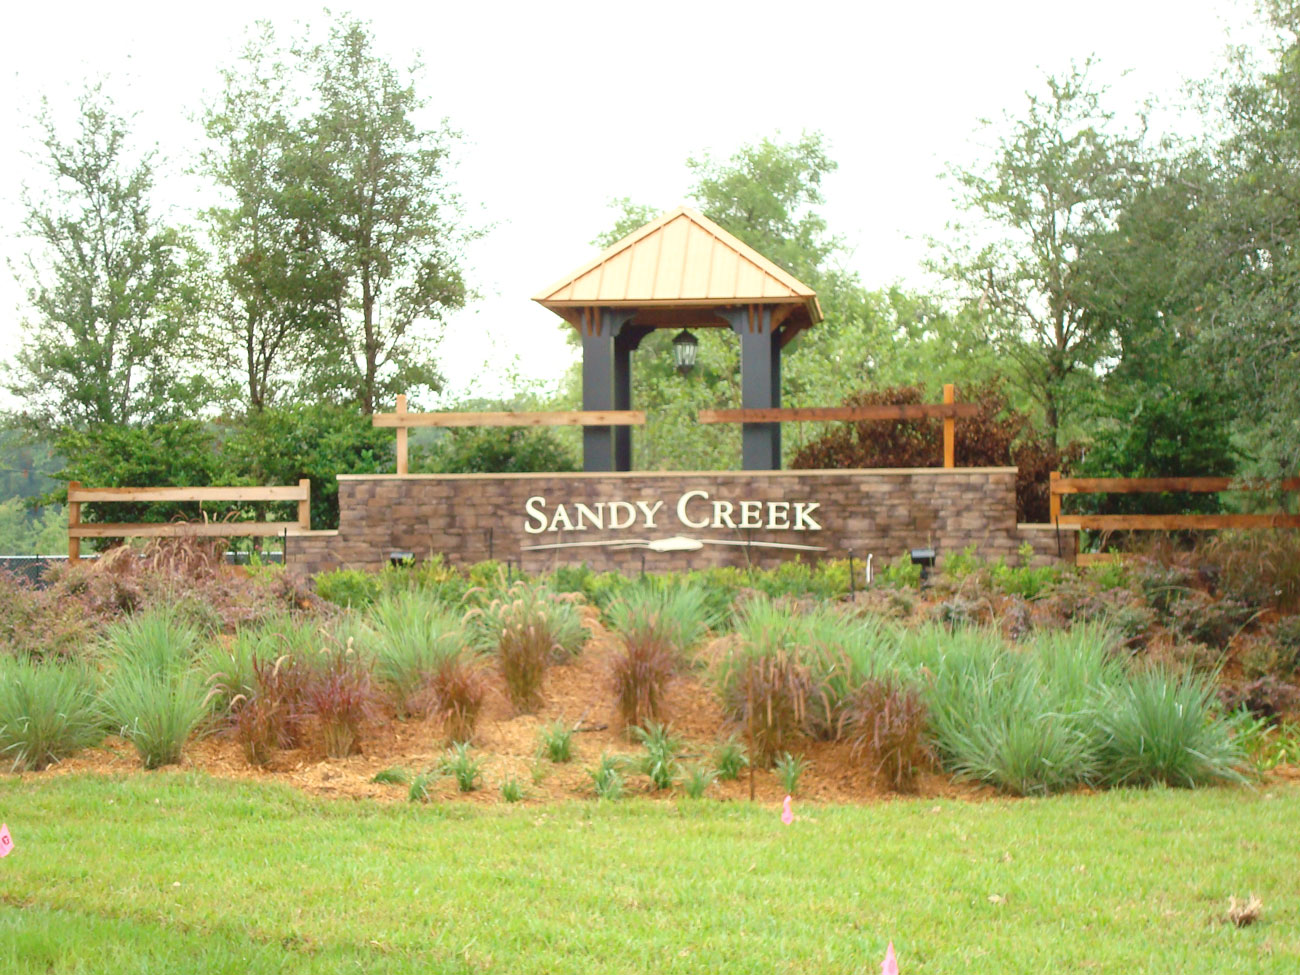 Sandy creek landscape architecture st john 39 s county for Sandy creek